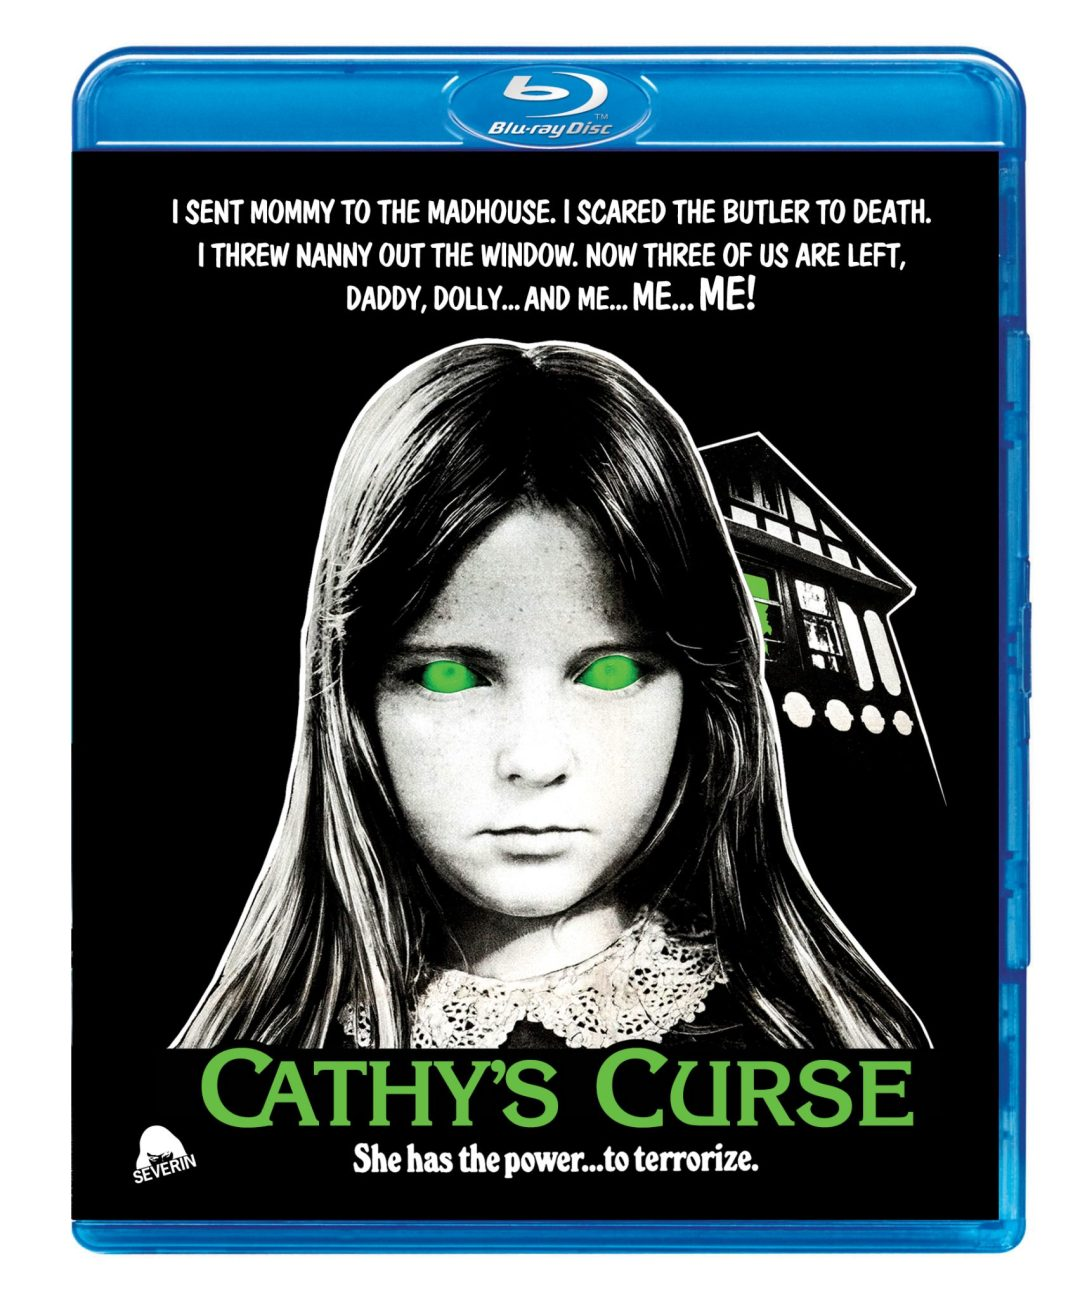 The Notorious 'Cathy's Curse' Makes Its Blu-ray Debut!